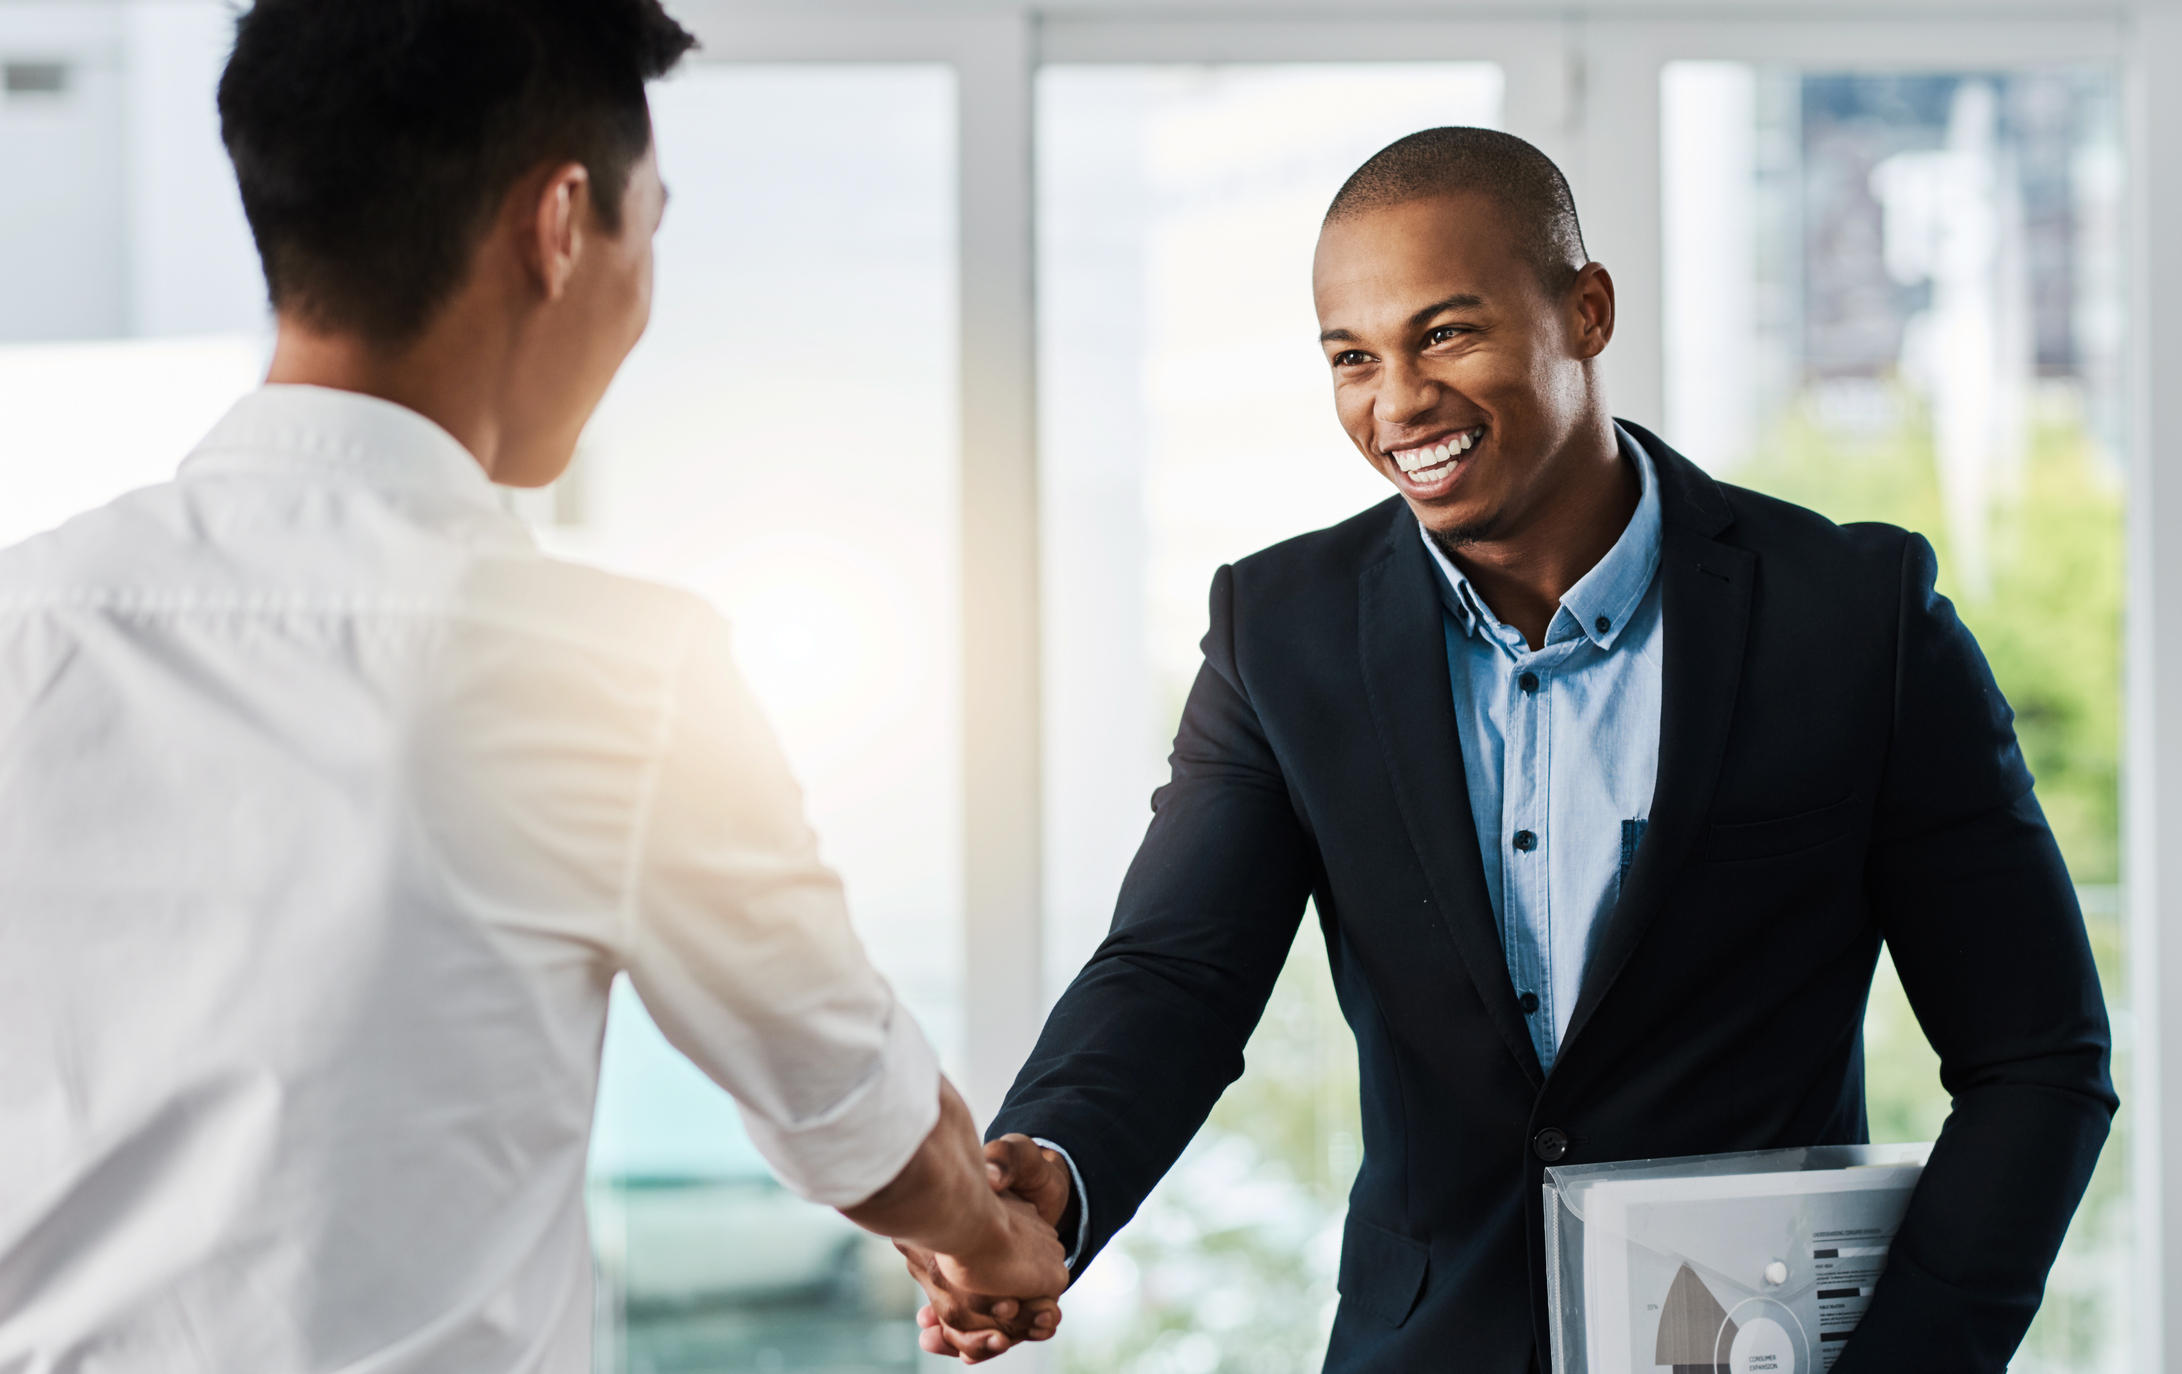 The Most Proven Leadership Interview Questions for Business Growth